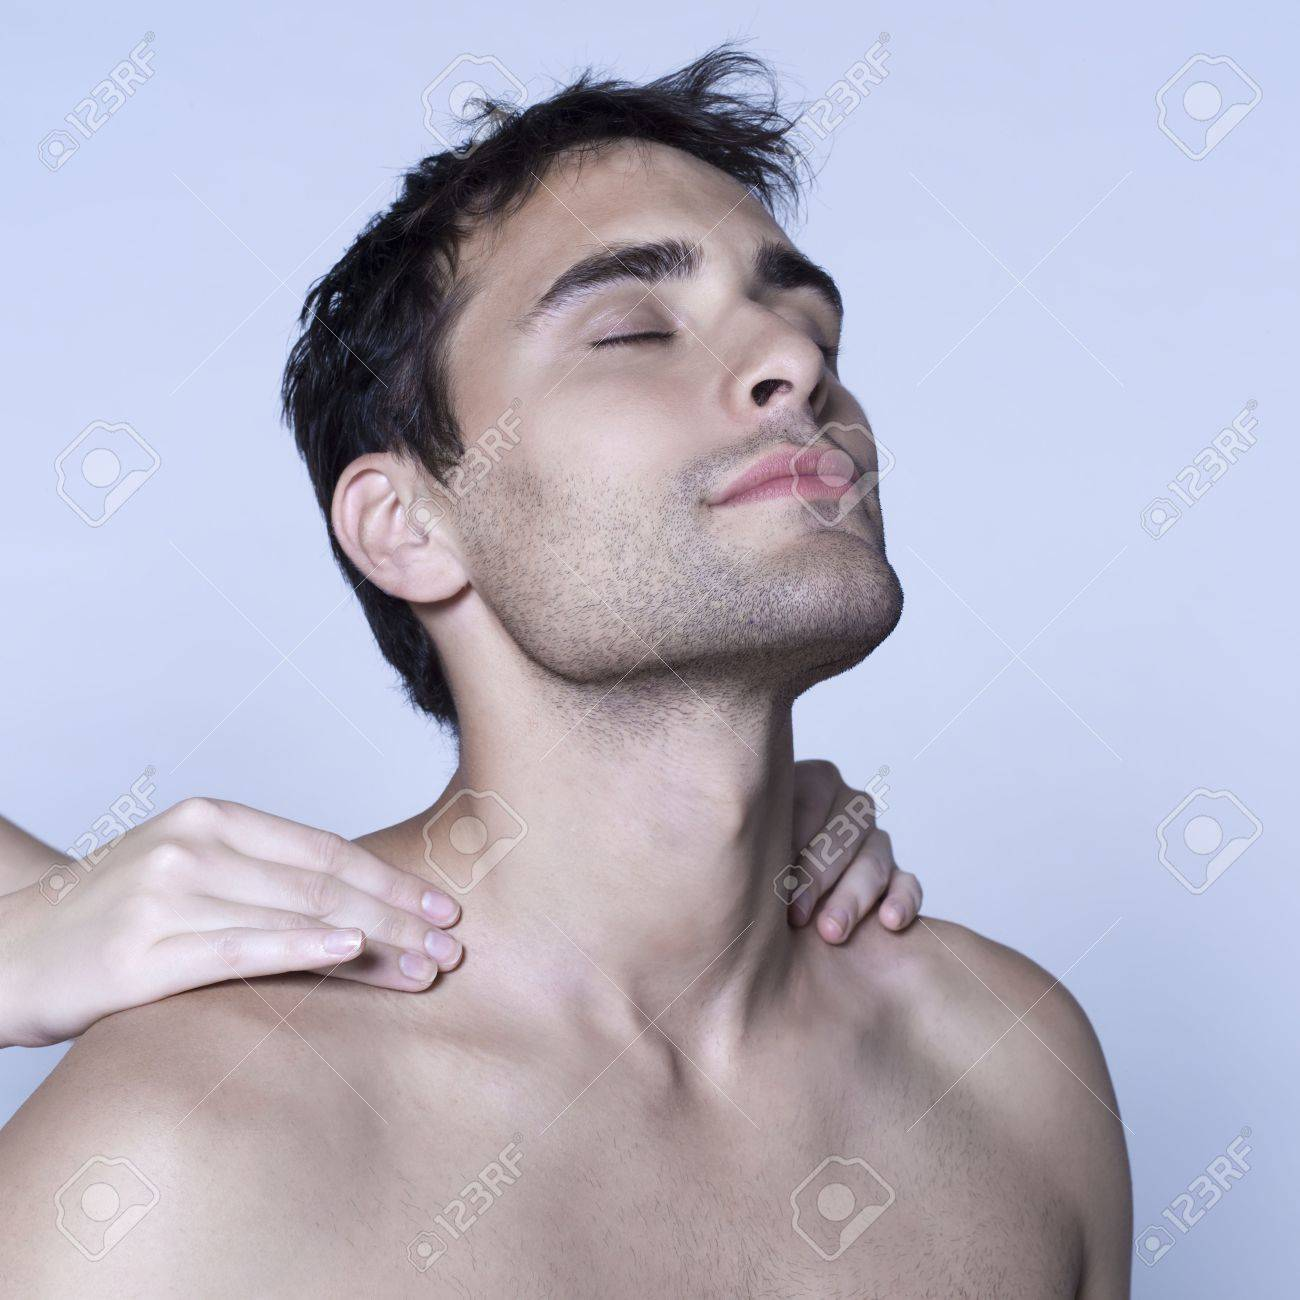 studio shot on isolated background of a handsome man having a massage Stock Photo - 3540460